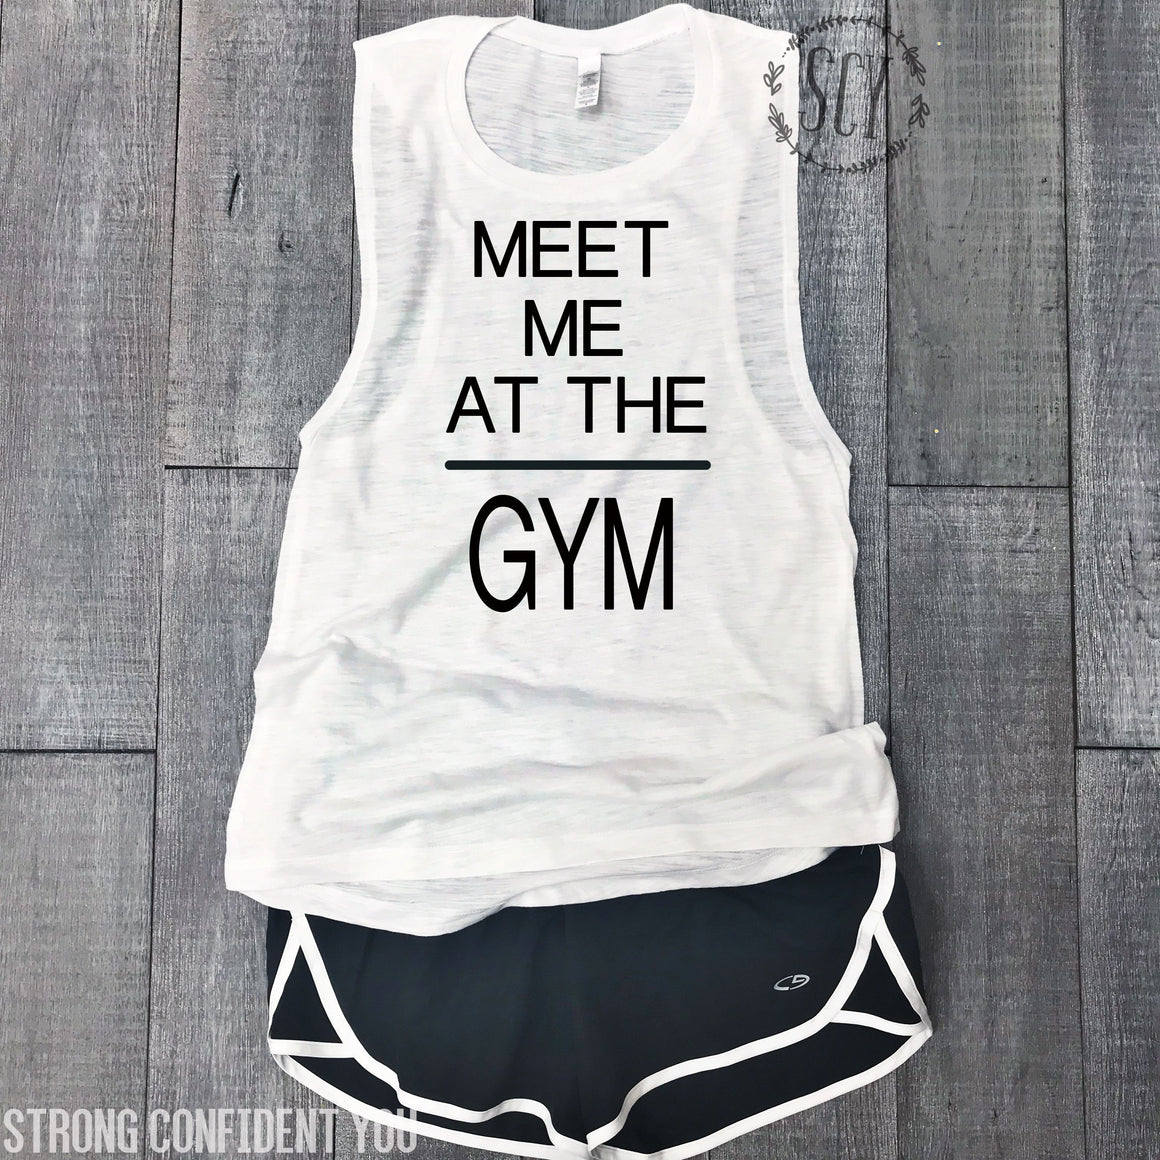 Meet Me At The Gym - Strong Confident You